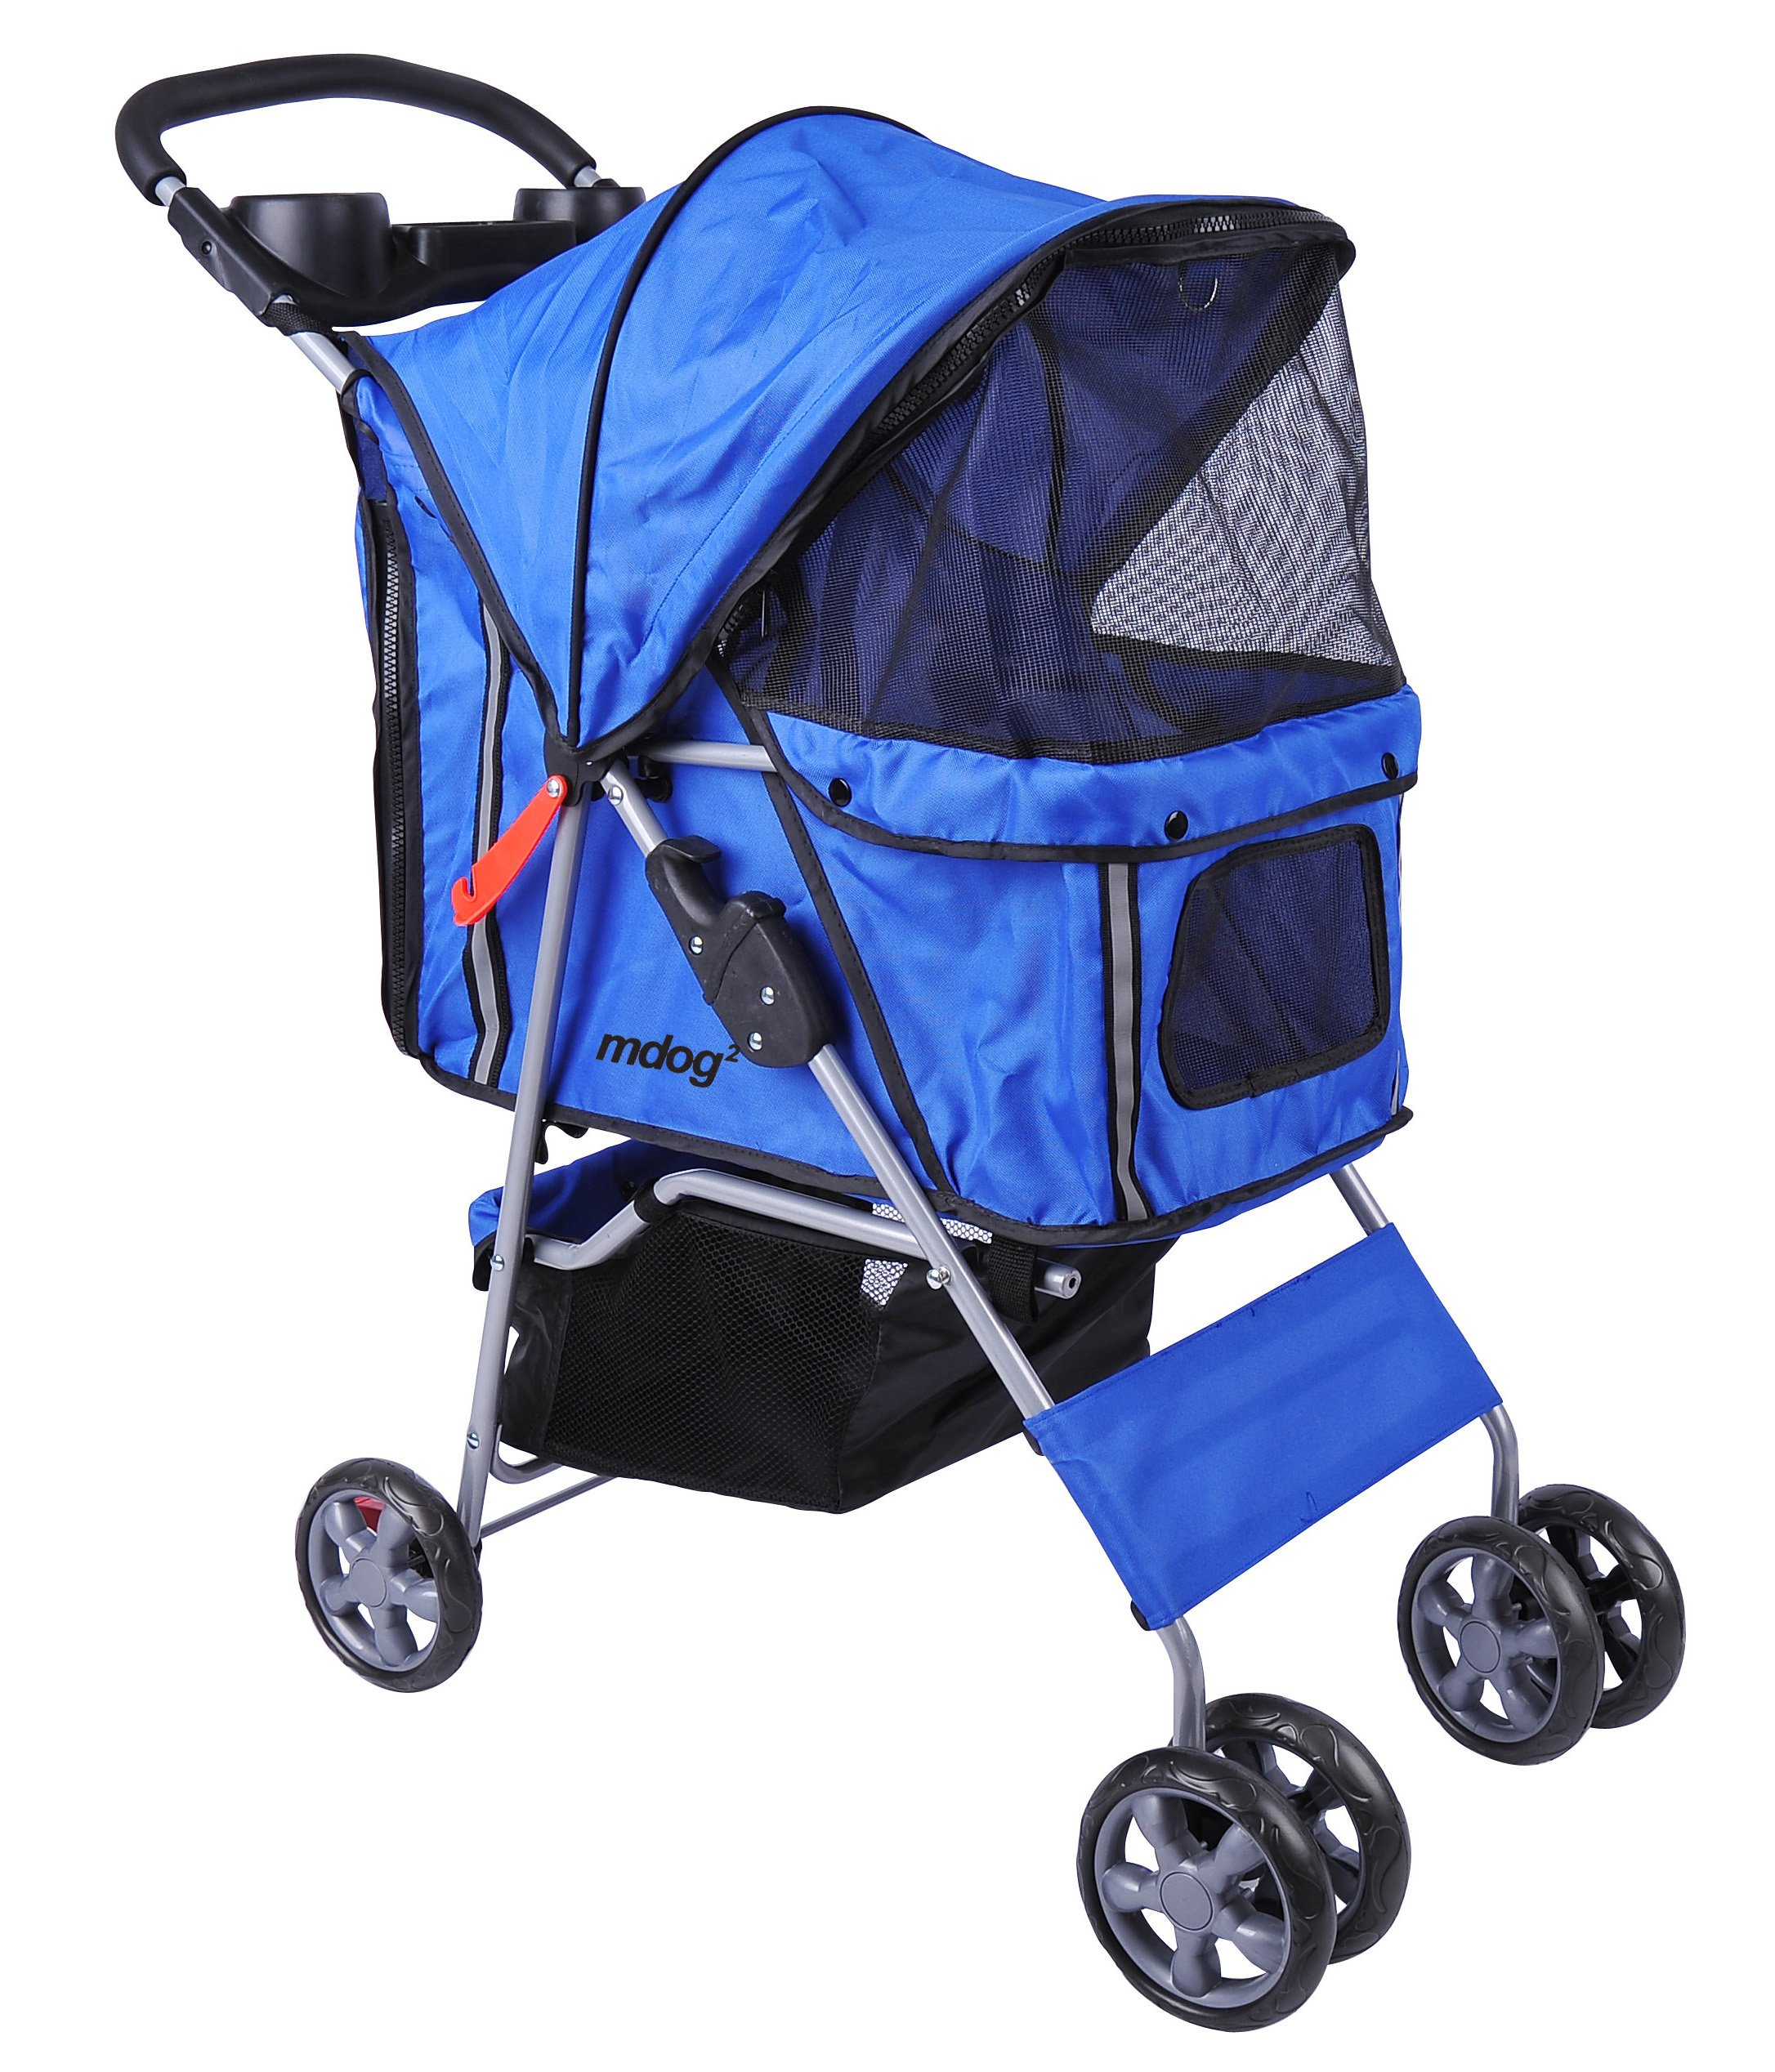 MDOG2 MK0034 4-Wheel Front and Rear Entry Pet Stroller, Blue